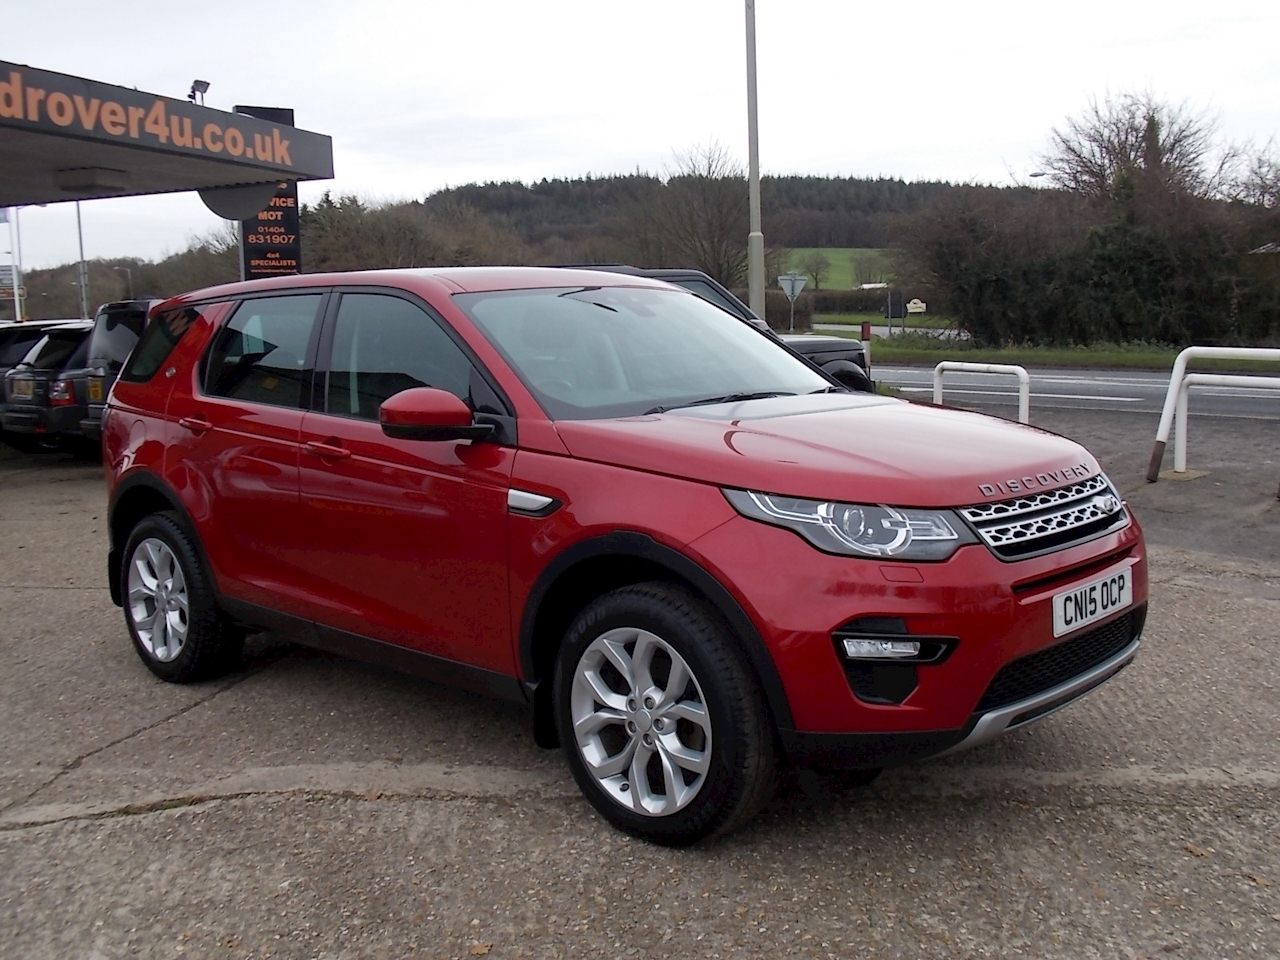 Land Rover Discovery Sport Sd4 Hse Estate 2.2 Manual Diesel